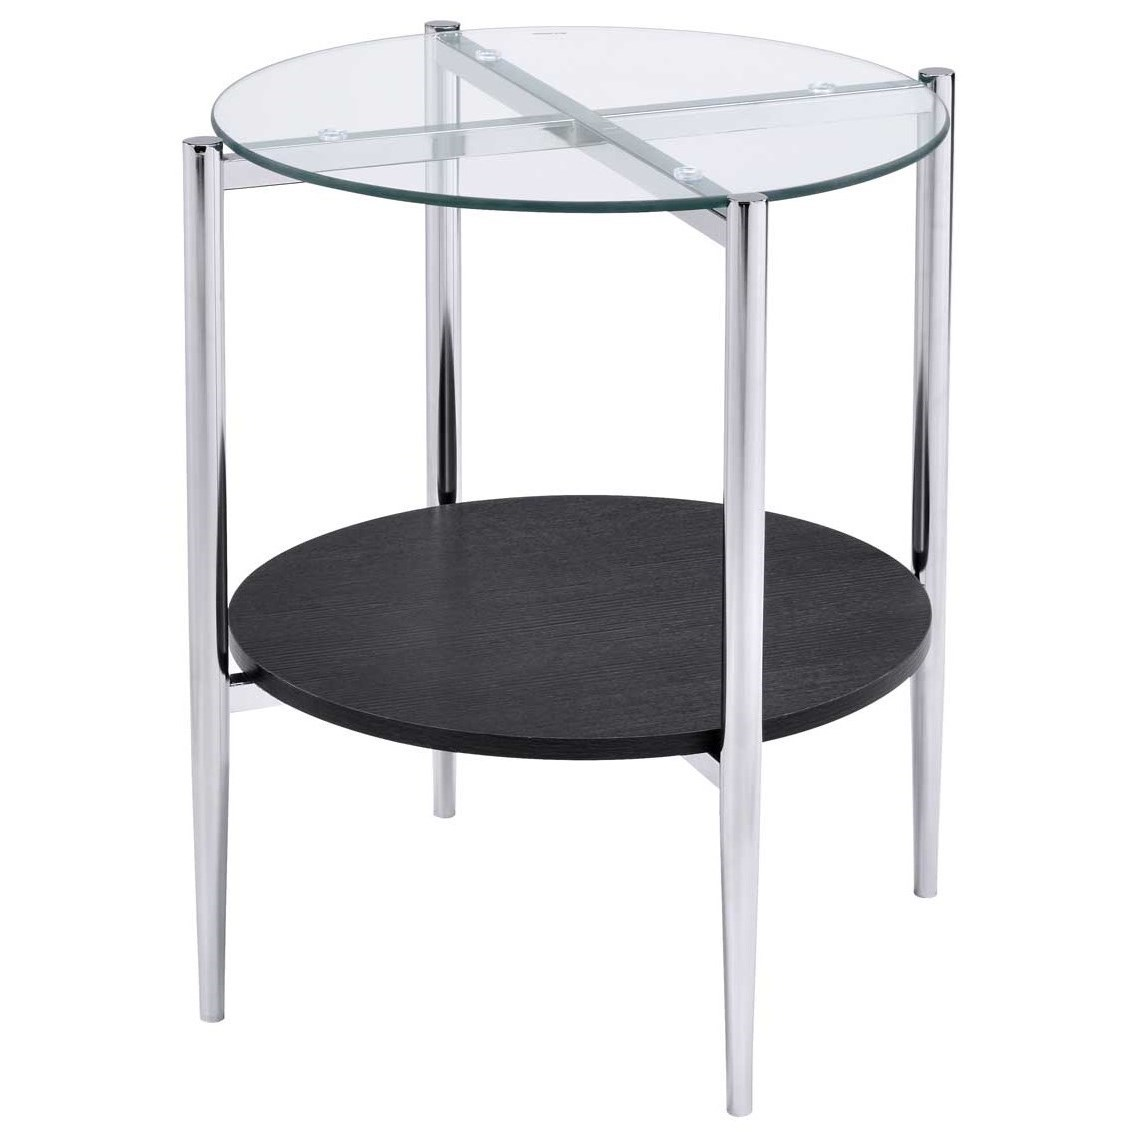 Bayliss End Table by Steve Silver at Standard Furniture